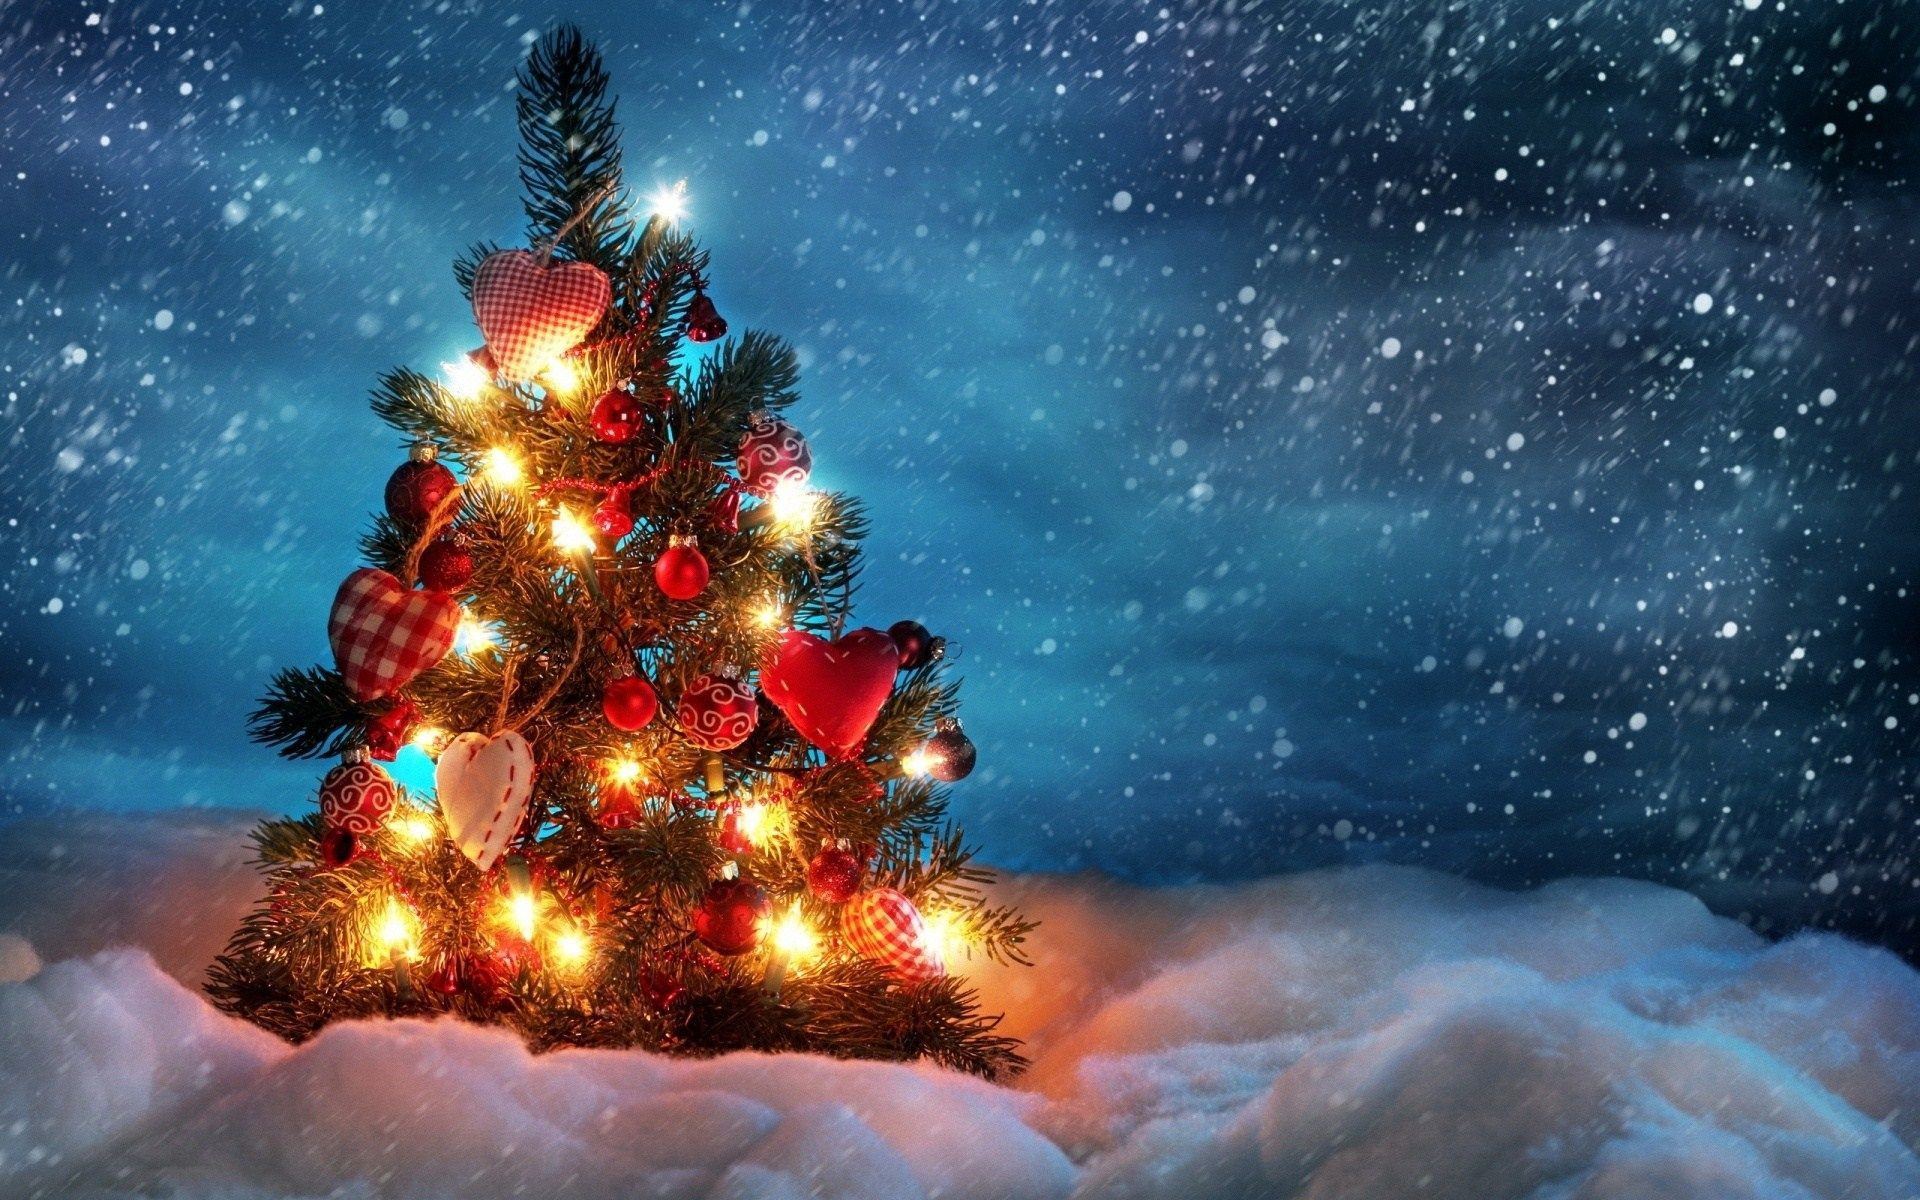 christmas tree light in snow hd wallpaper, led christmas lights